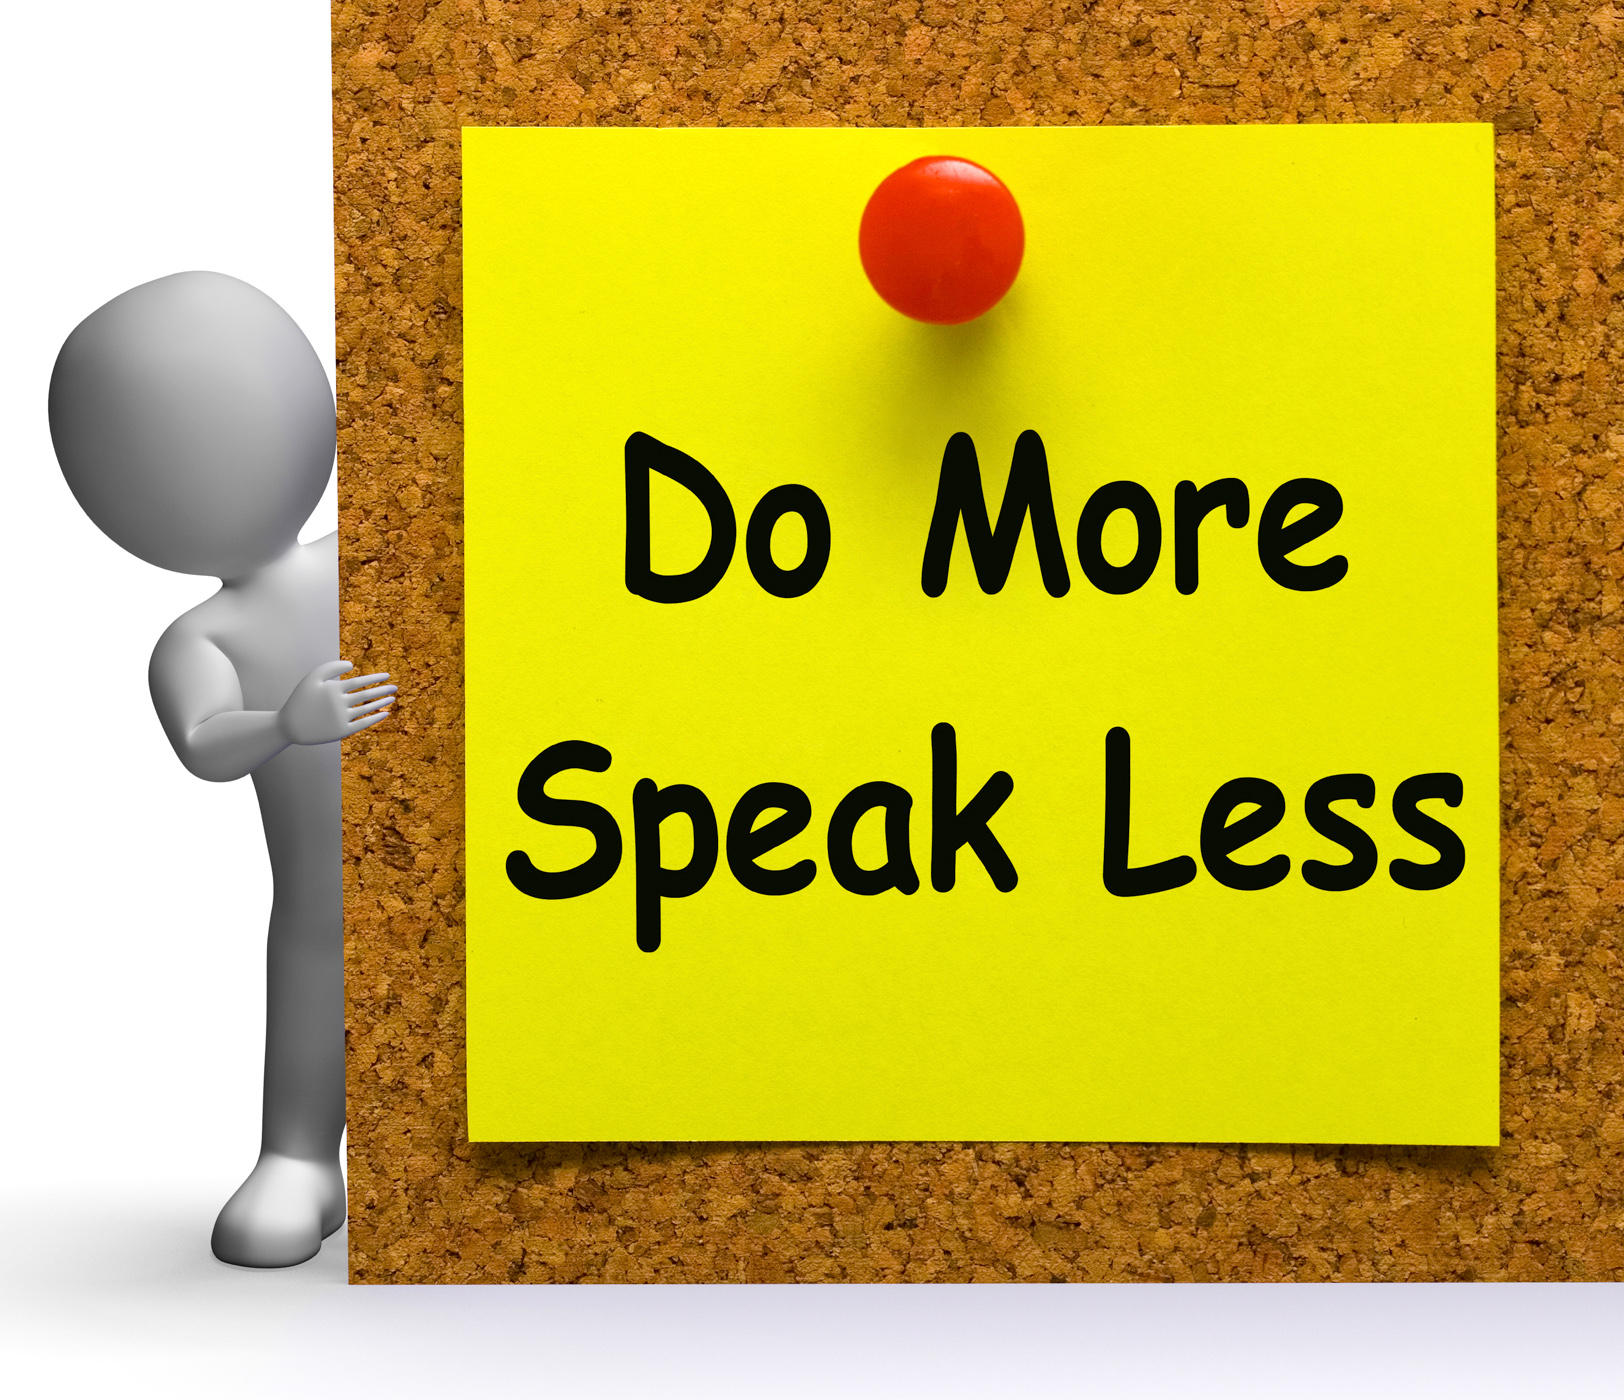 Do More Speak Less Note Means Be Productive Or Constructive, Do, Inspirational, Less, More, HQ Photo